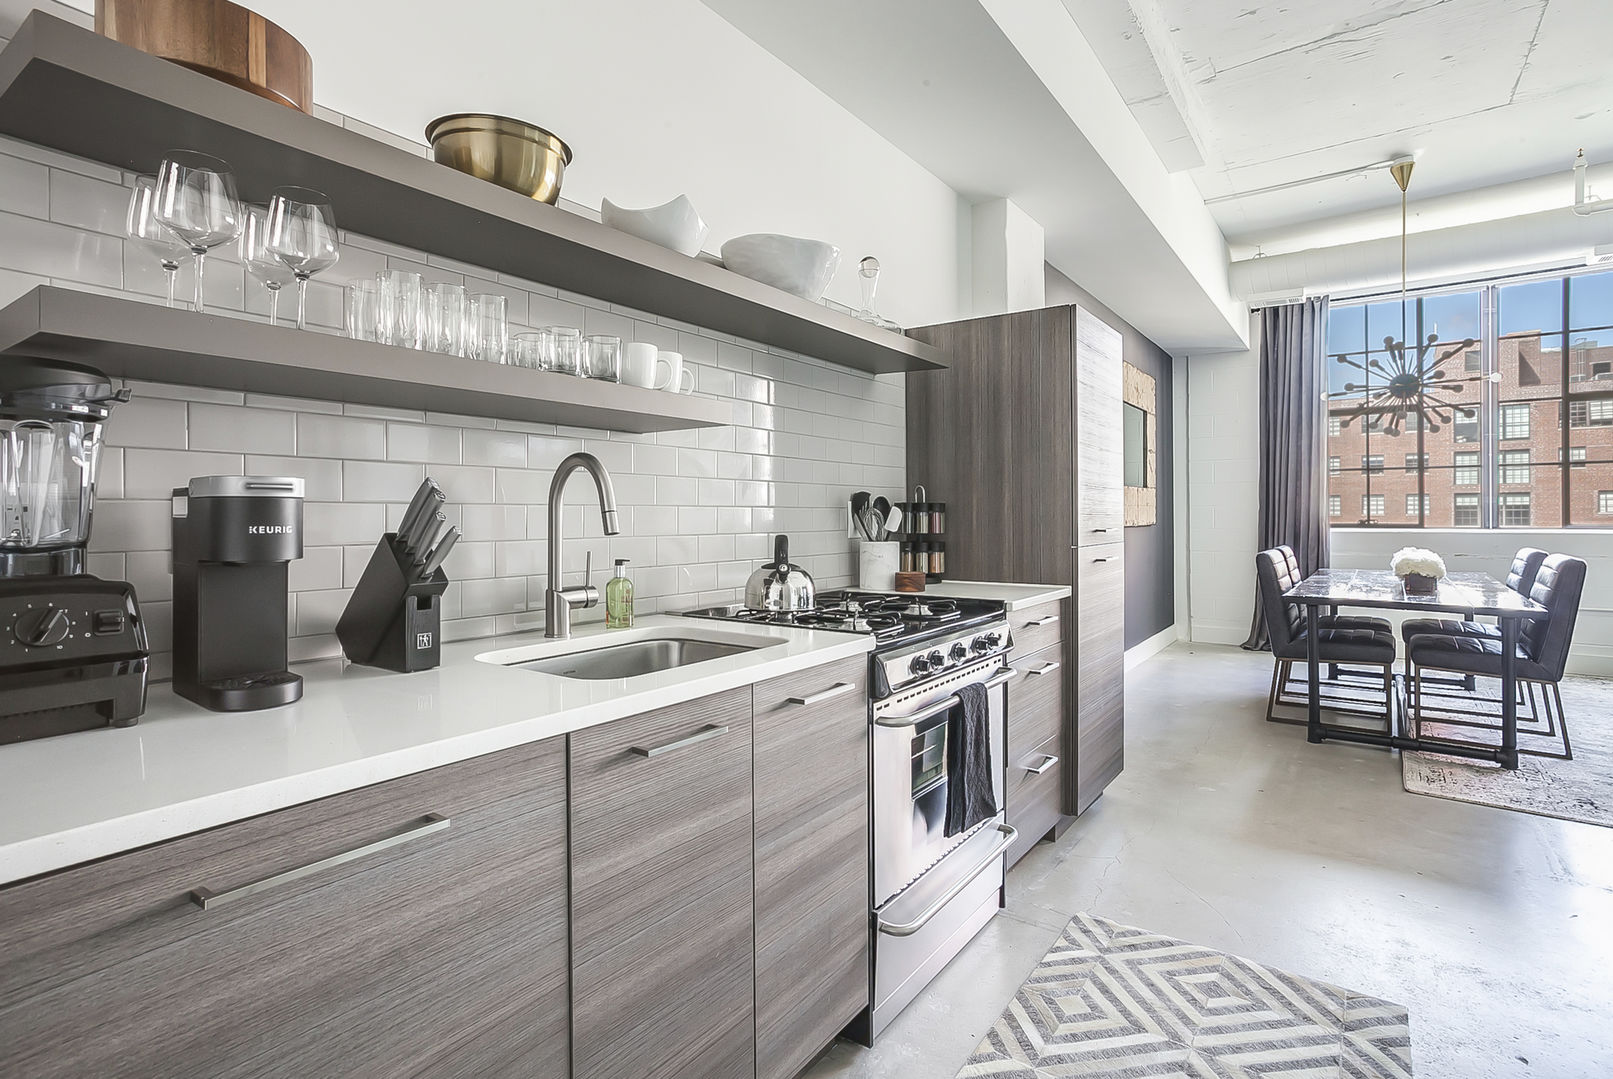 Kitchen of this Ponce Market Apartment with modern appliances and a view into the dining area.